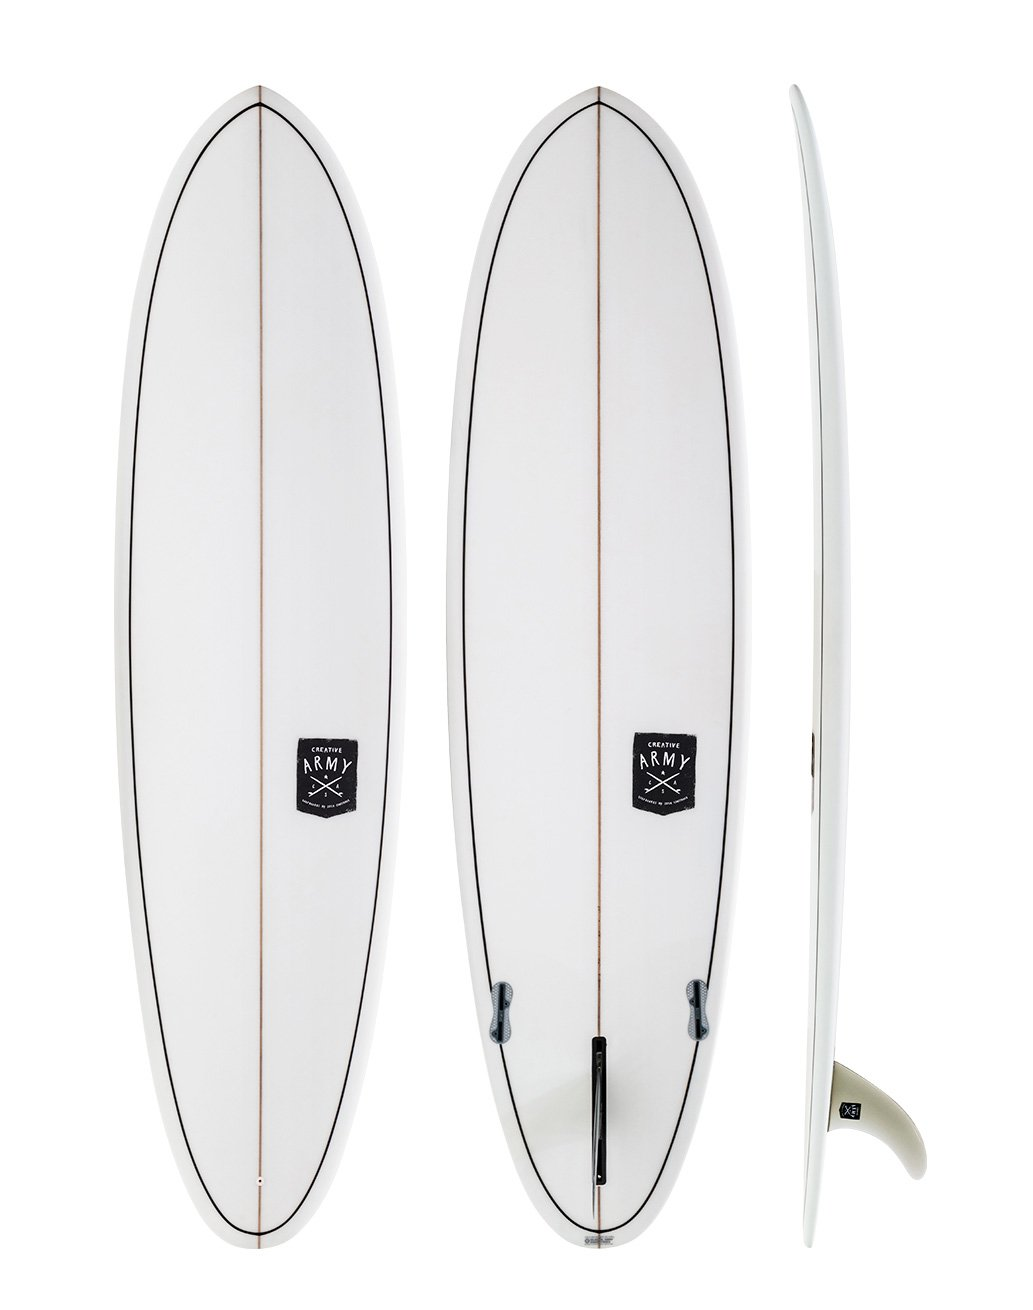 creative army huevo surfboard